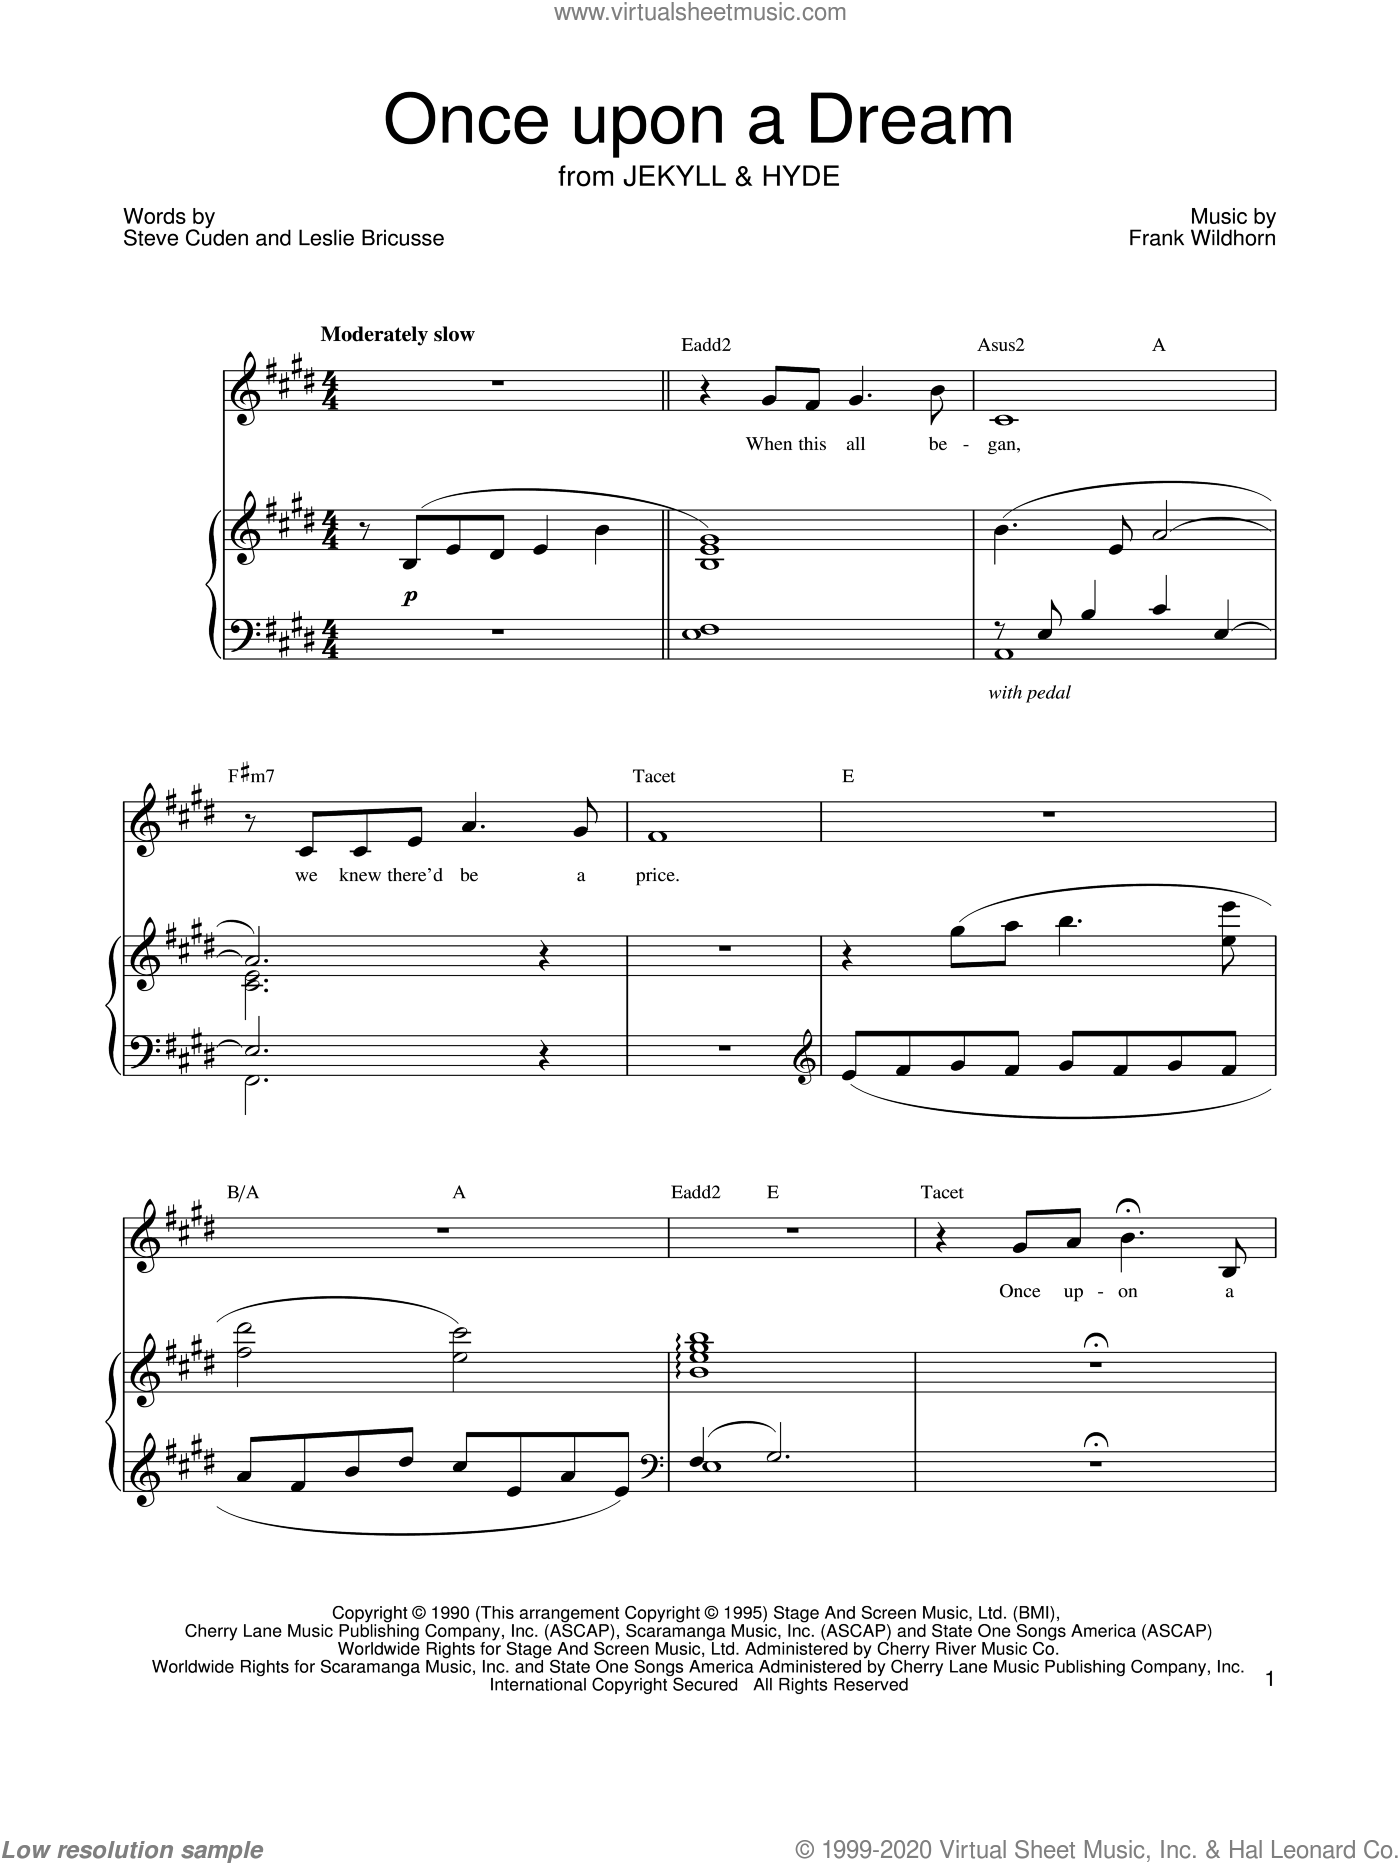 Once Upon A Dream sheet music for voice and piano by Steve Cuden